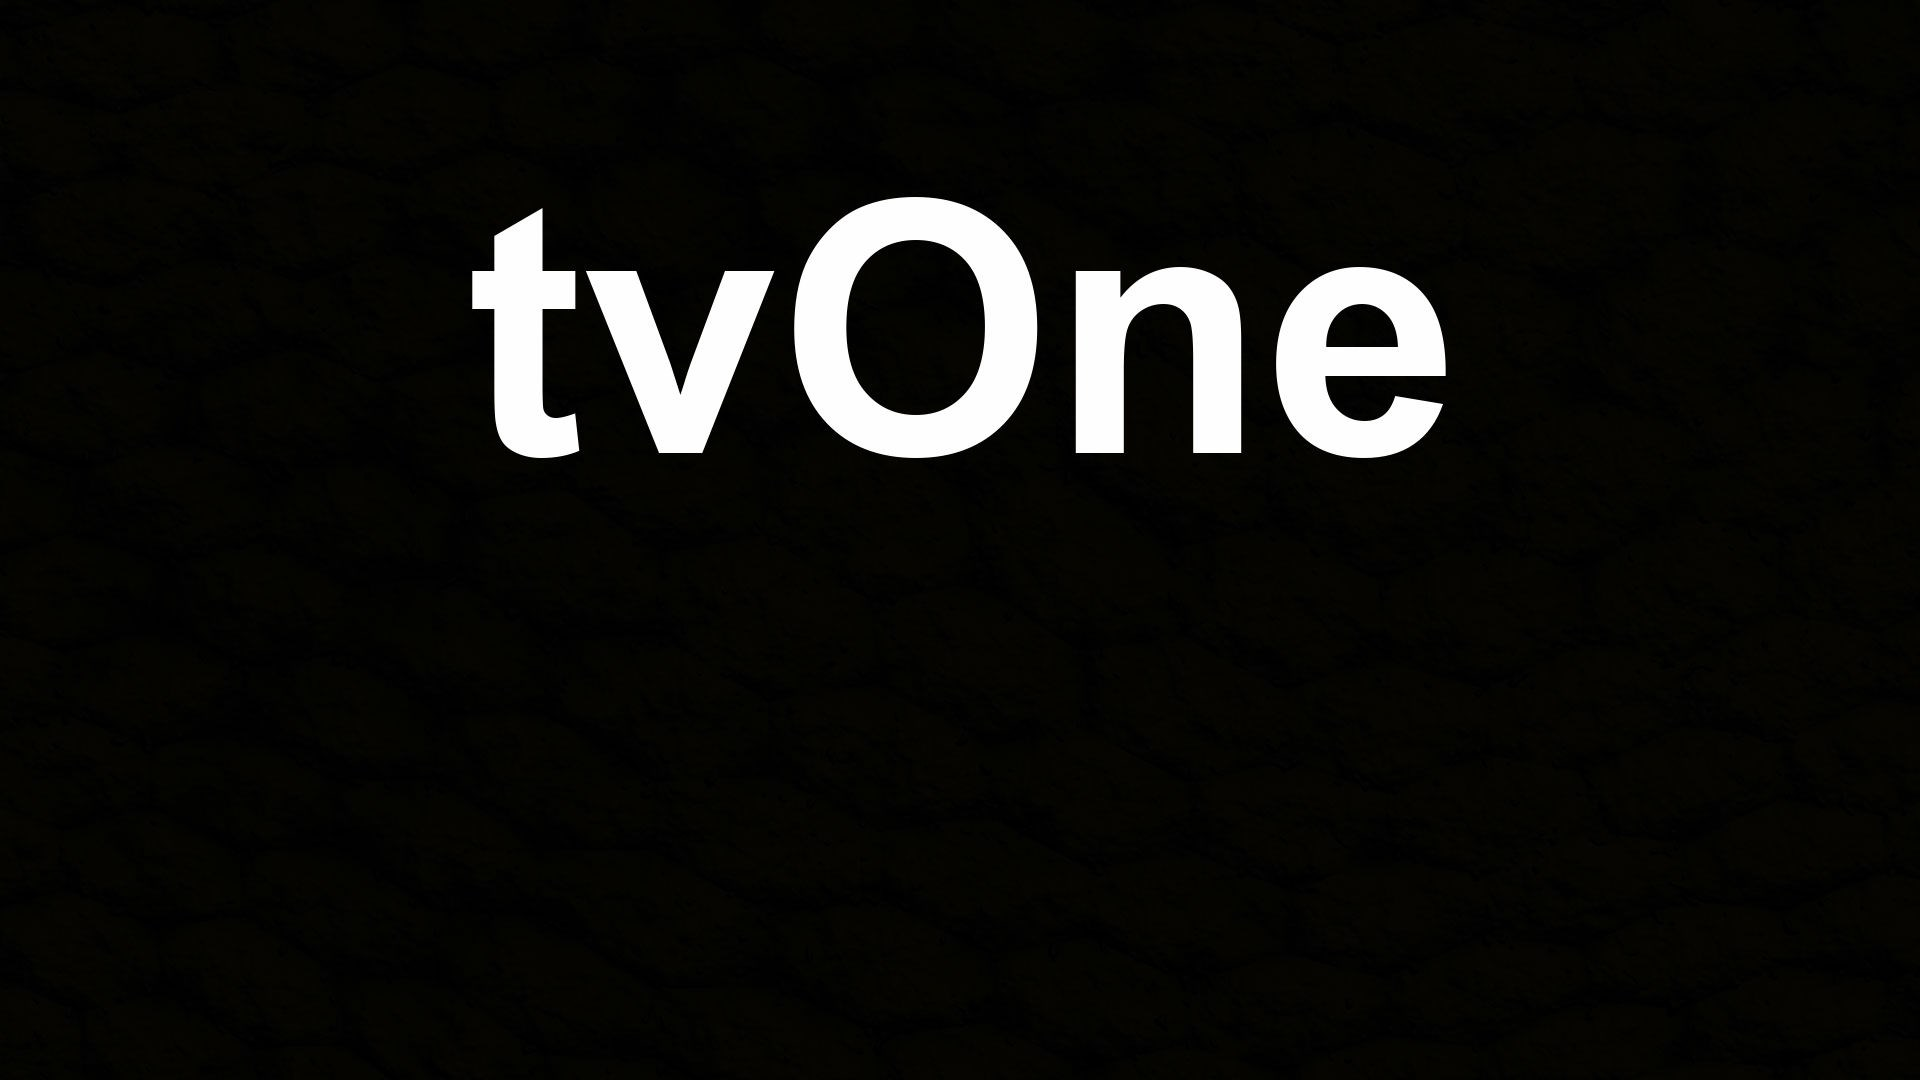 How to Install TVONE 3rd Party Kodi add-on on 19 Matrix